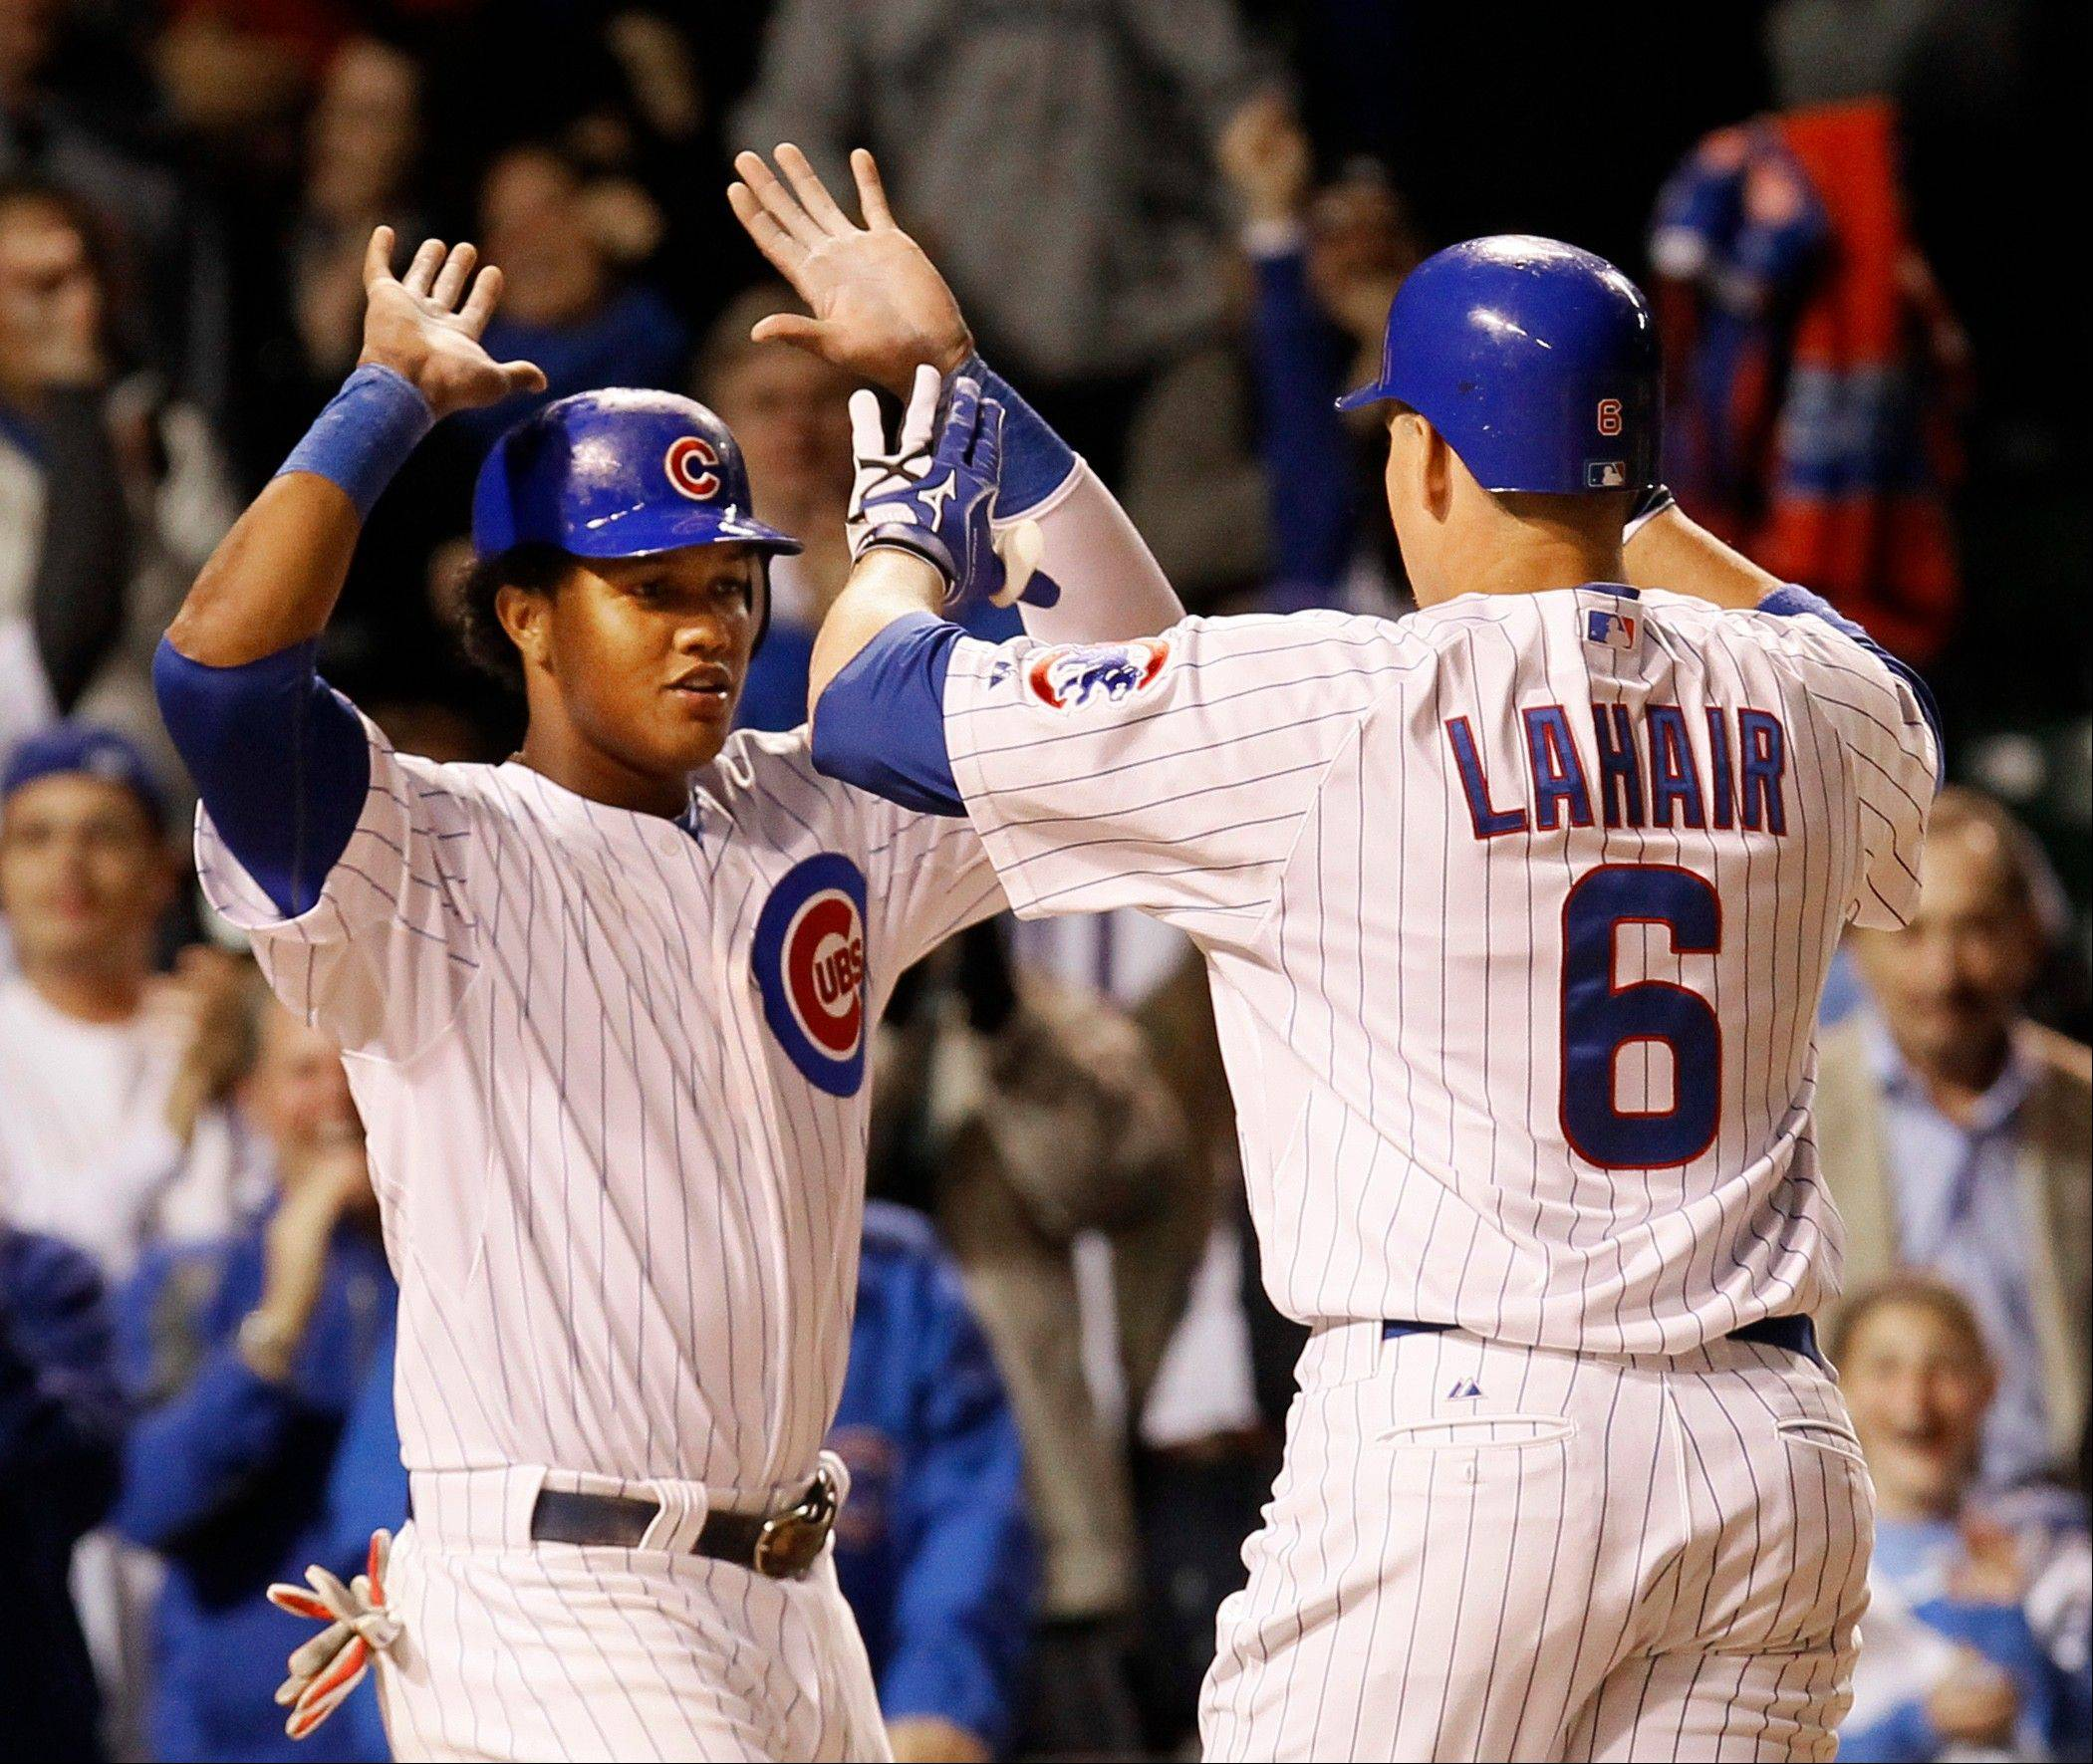 Bryan LaHair, right, celebrates with Starlin Castro after the pair scored on LaHair's game tying, 2-run home run in the ninth inning Tuesday at Wrigley Field during the Cubs' 3-2 loss to Cincinnati.